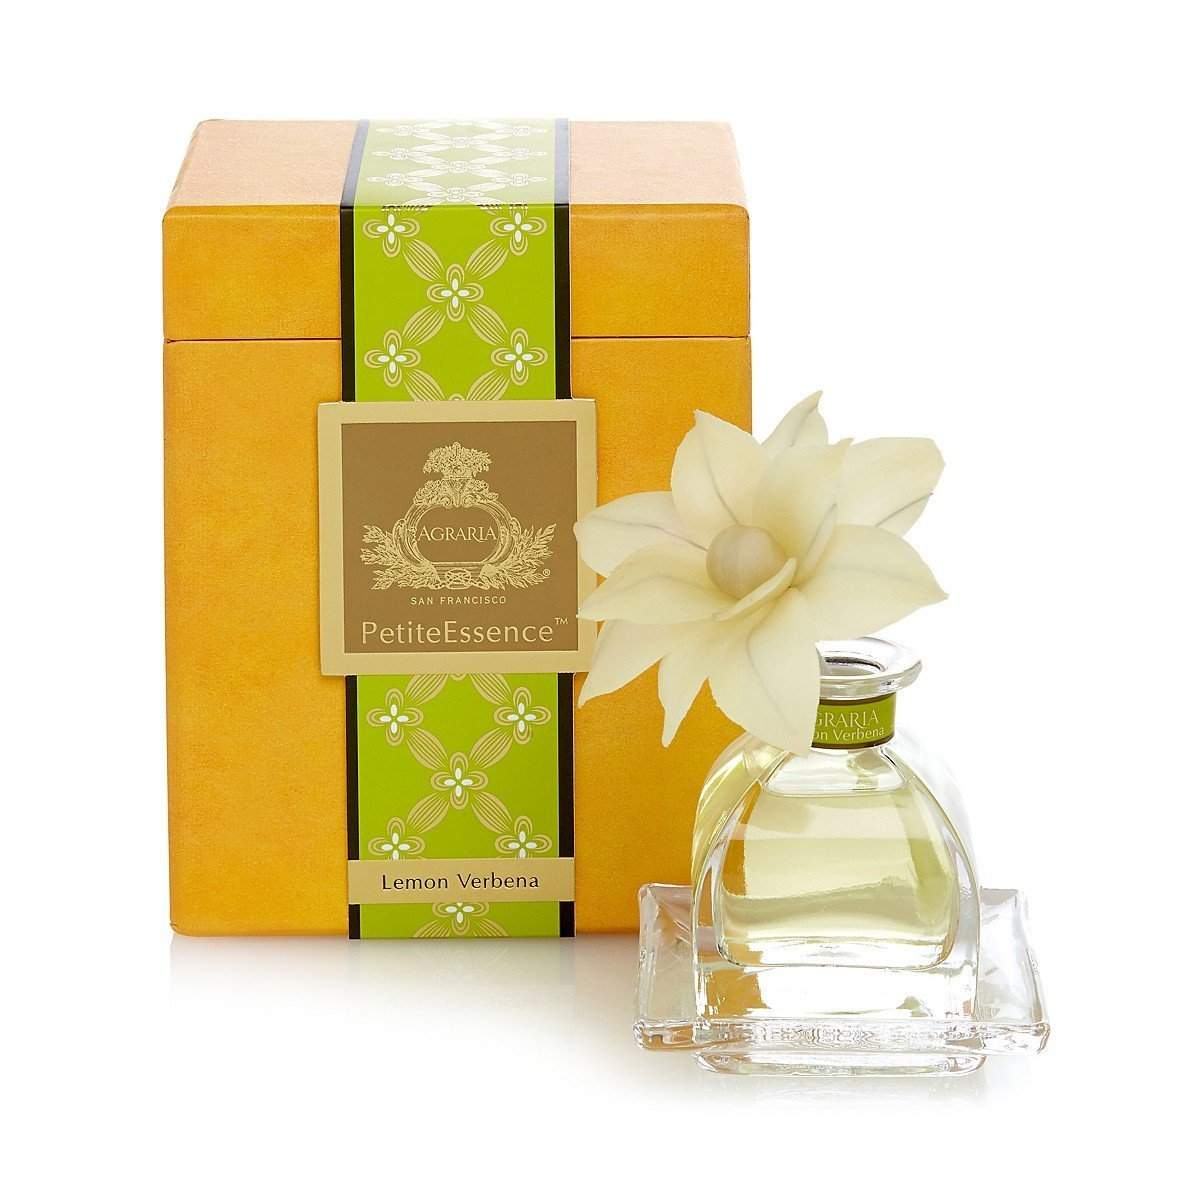 Agraira San Francisco Home Lemon Verbena PetiteEssence Diffuser-Agraria San Francisco Home-Oak Manor Fragrances